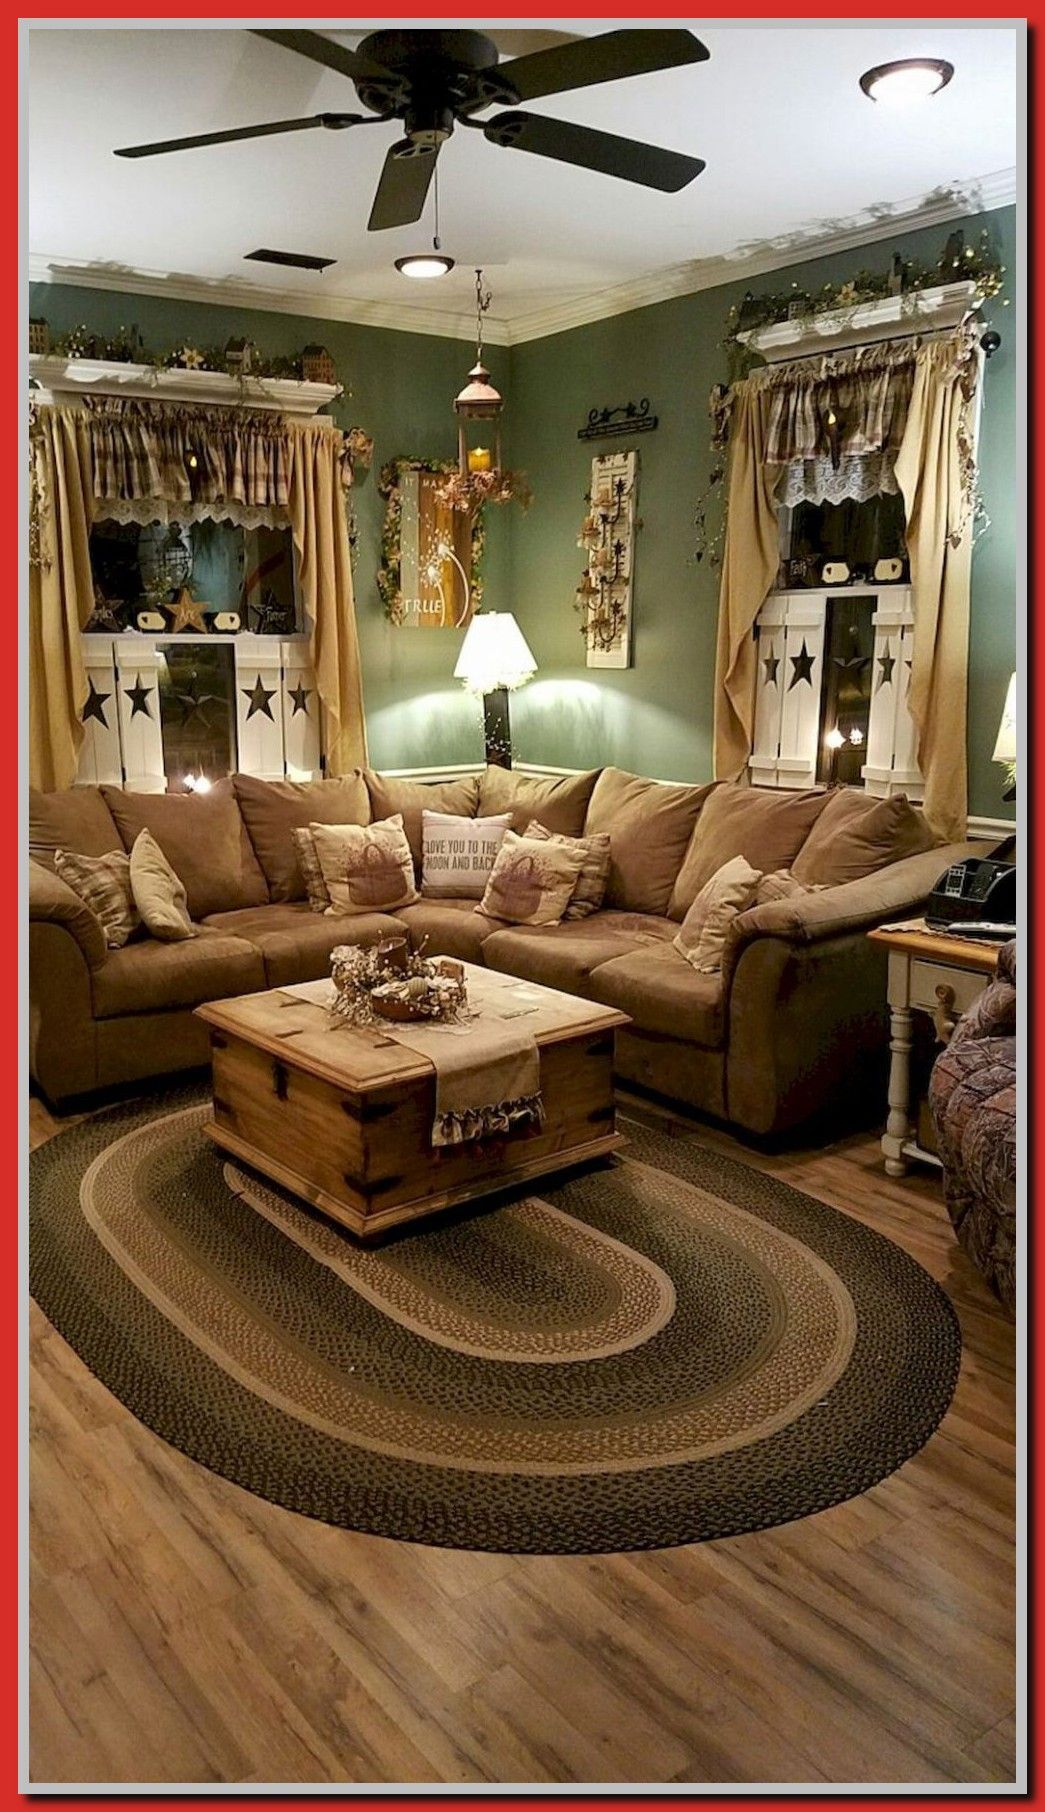 62 Reference Of Small Living Room Country Decorating Ideas In 2020 Living Room Decor Country Country Living Room Furniture Rustic Living Room Furniture #small #country #living #room #ideas